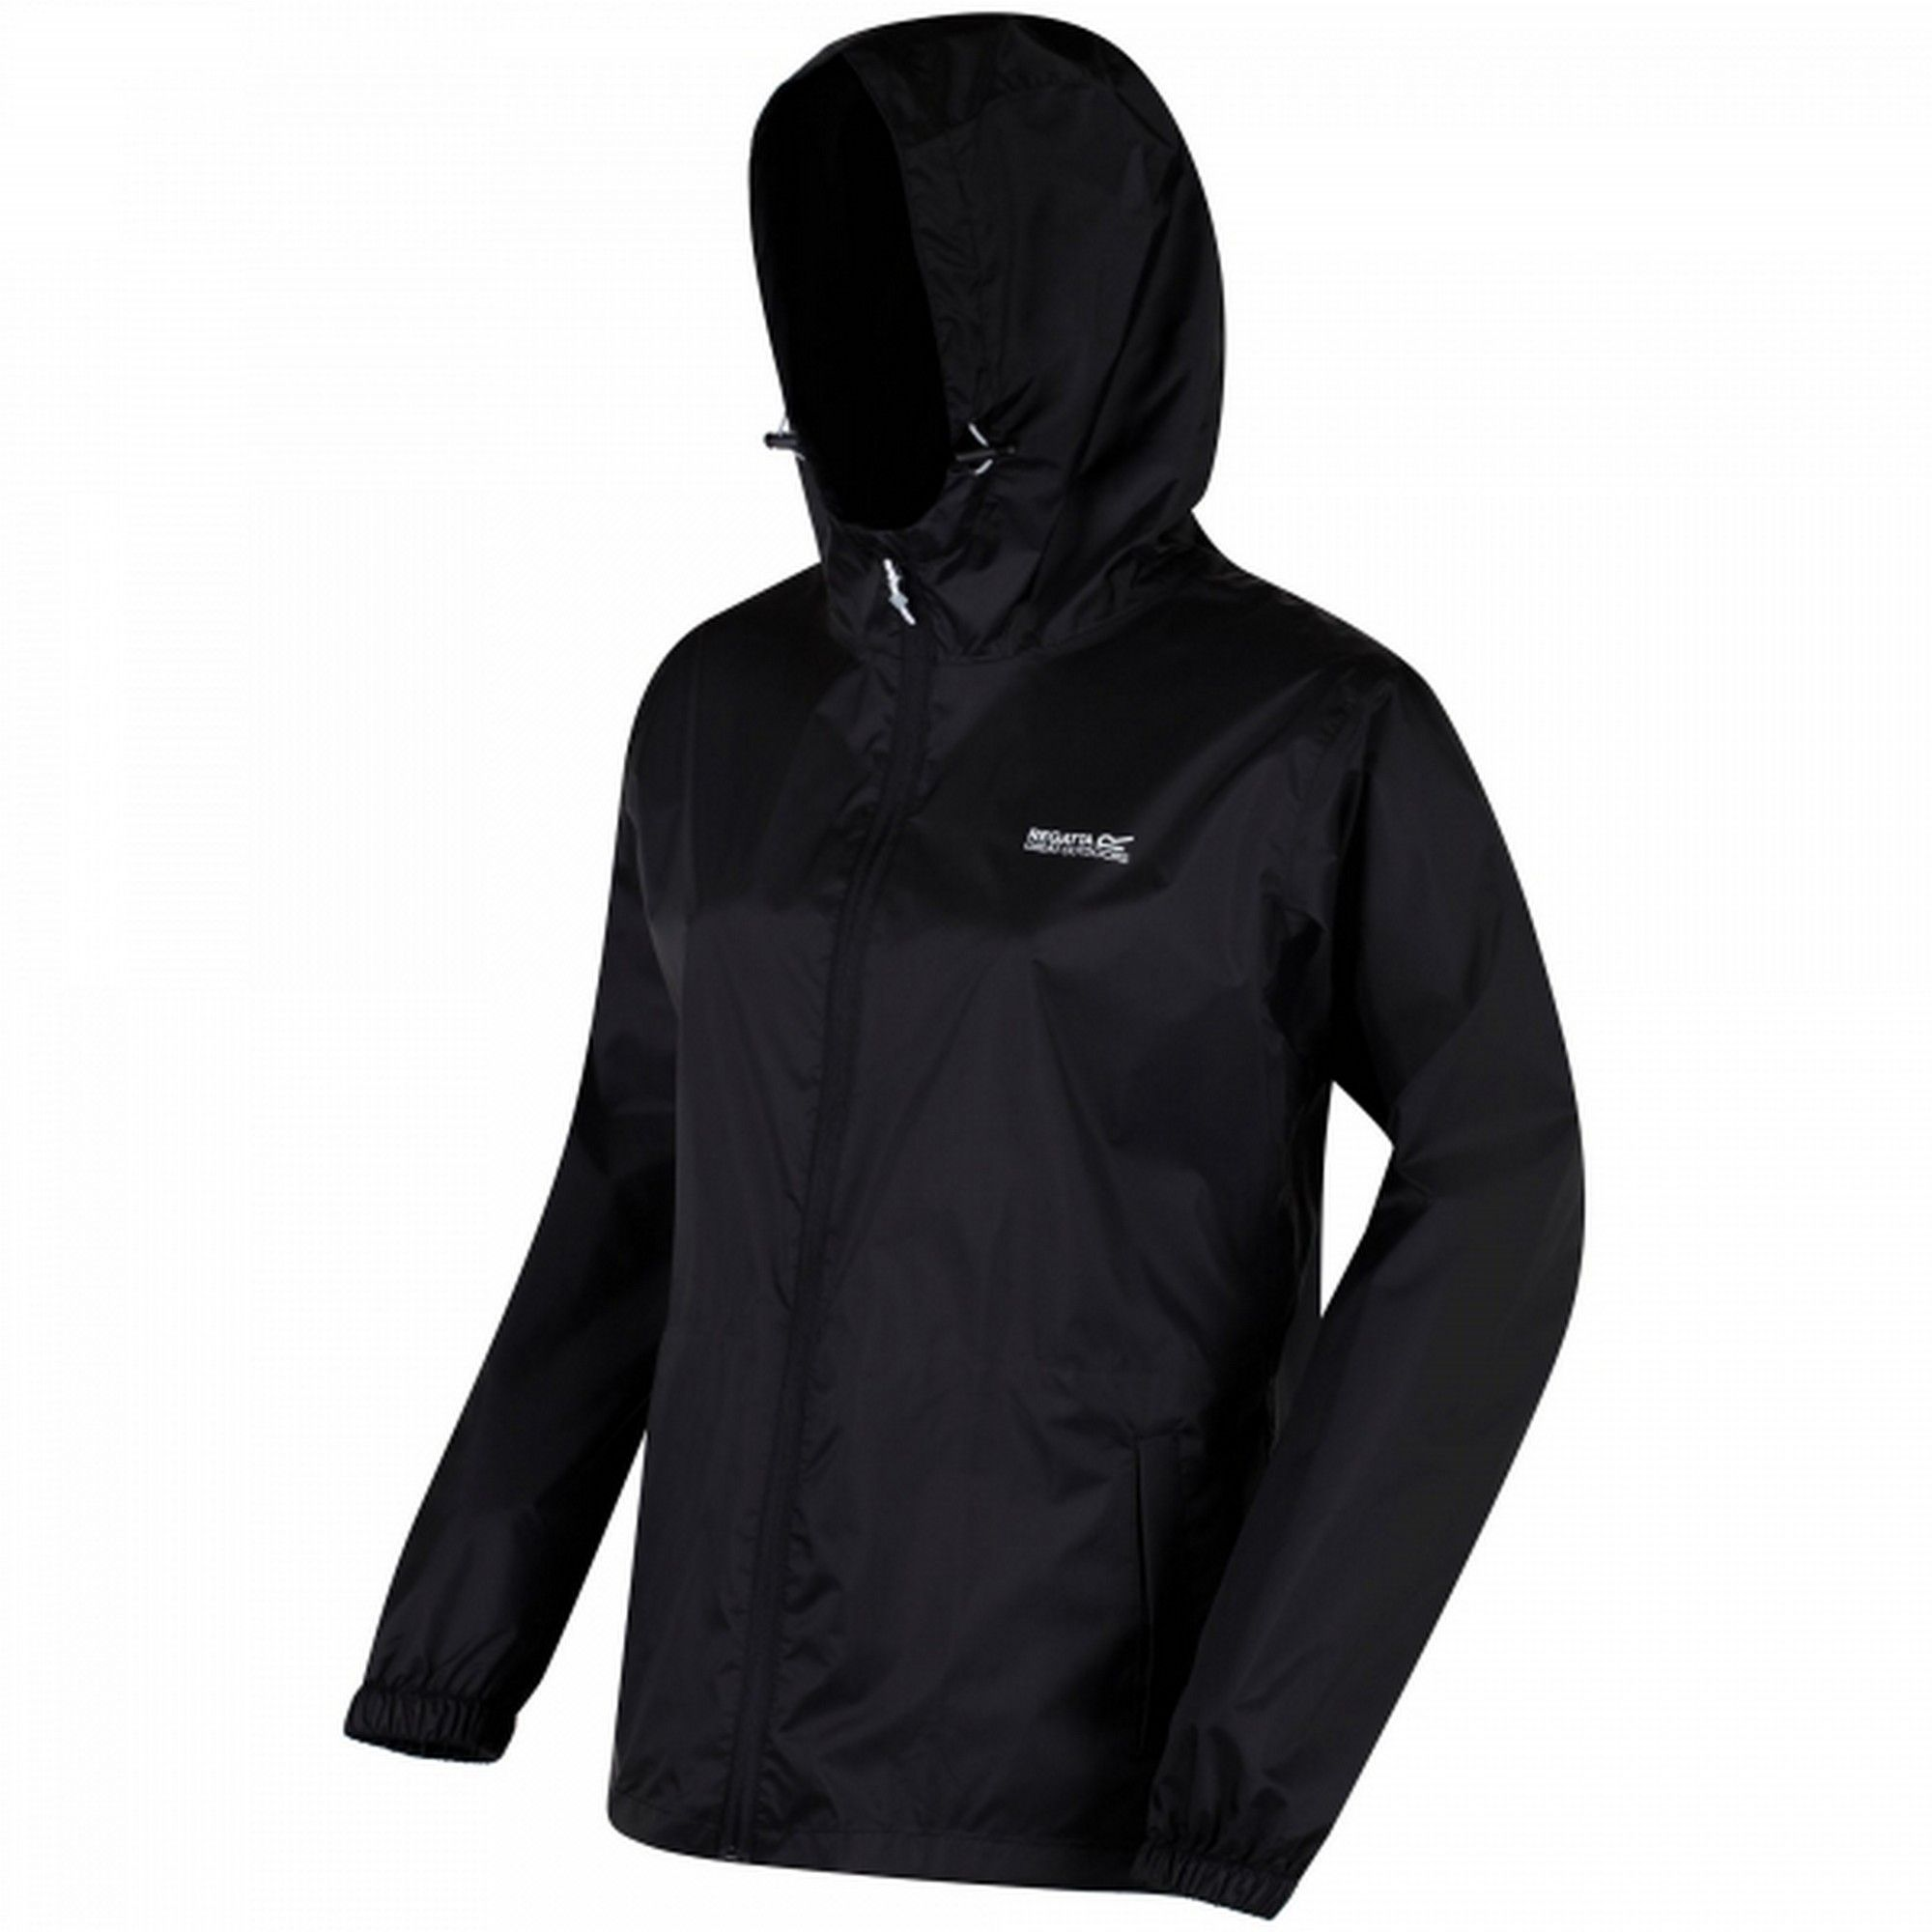 Regatta Womens/Ladies Pk It Jkt III Waterproof Hooded Jacket